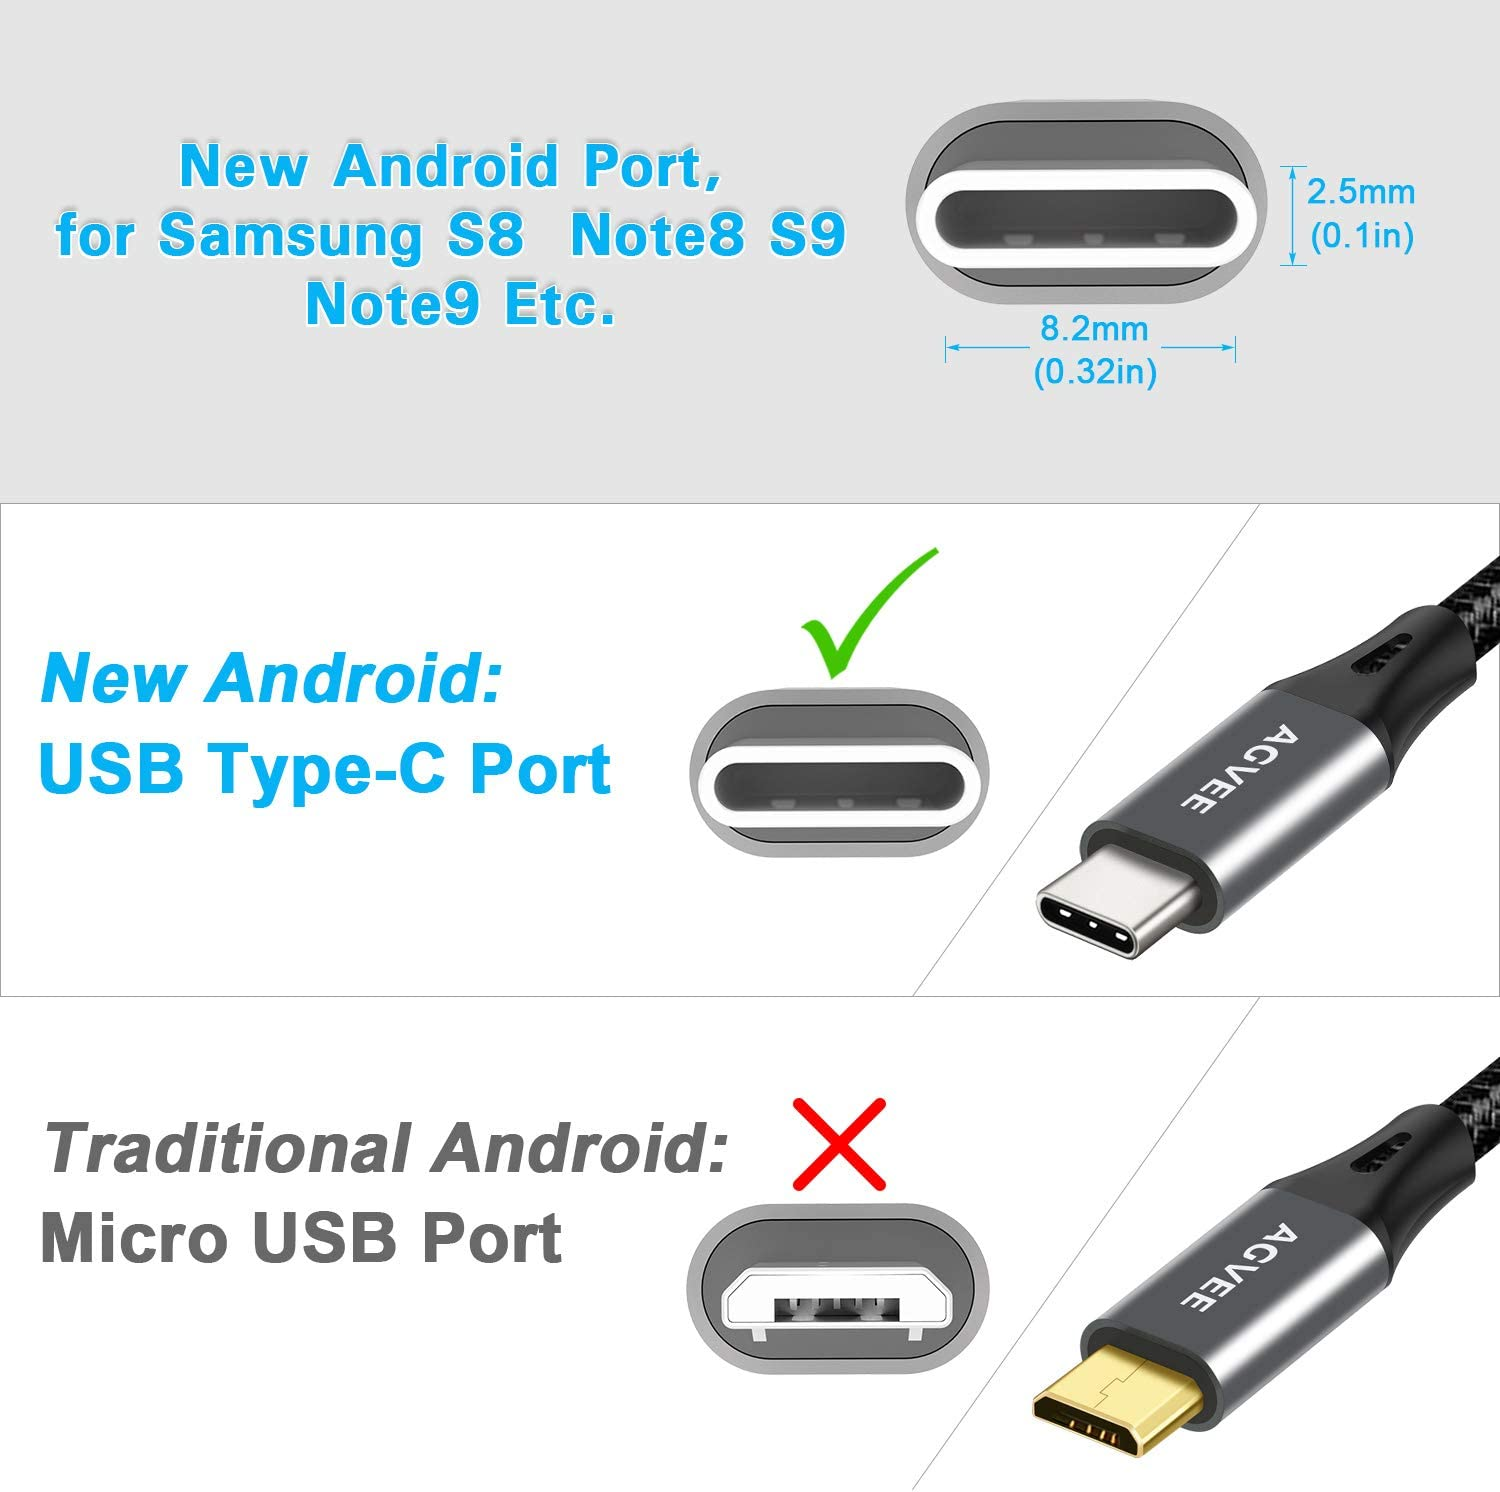 Agvee 3A Fast USB-C Charing Cable Seamless USBC End Tip LG Stylo 4 5 Note 9 8 2 Pack 15ft G7 G8 V20 Black Braided Type-C Charger Phone Cord for Samsung Galaxy S10 S9 S8 Edge Plus